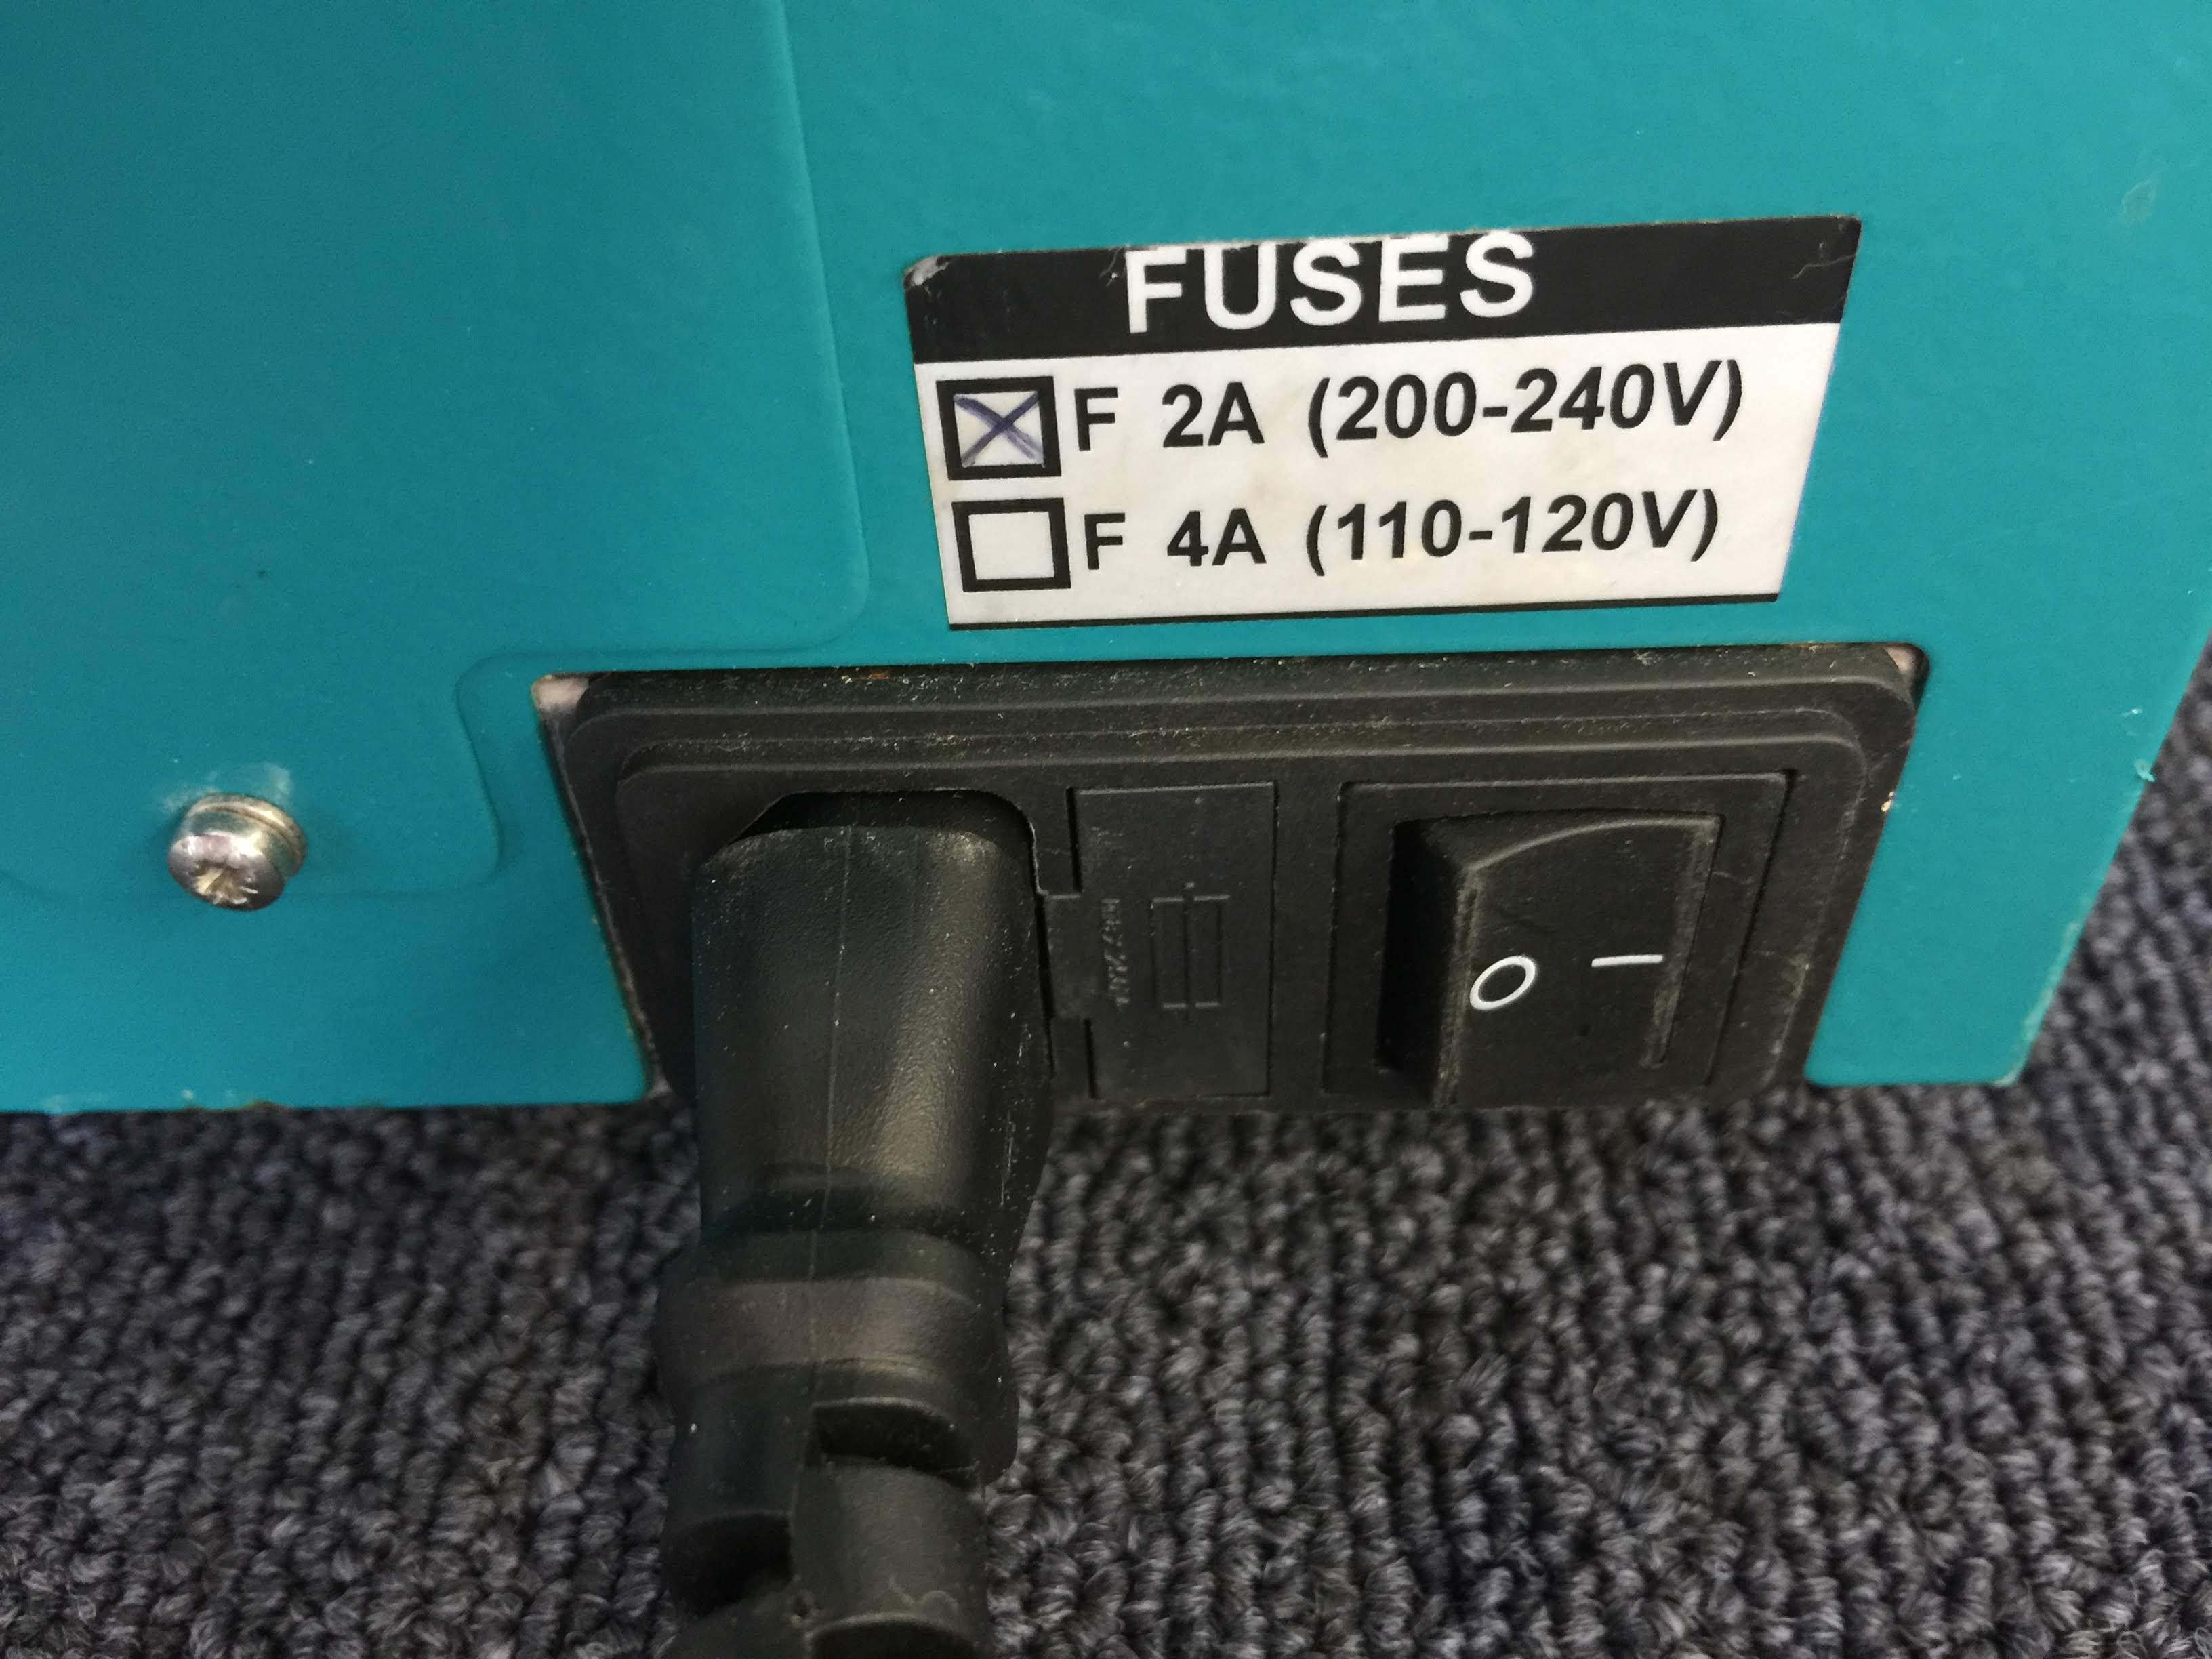 Power On/Off Switch, Power Cable